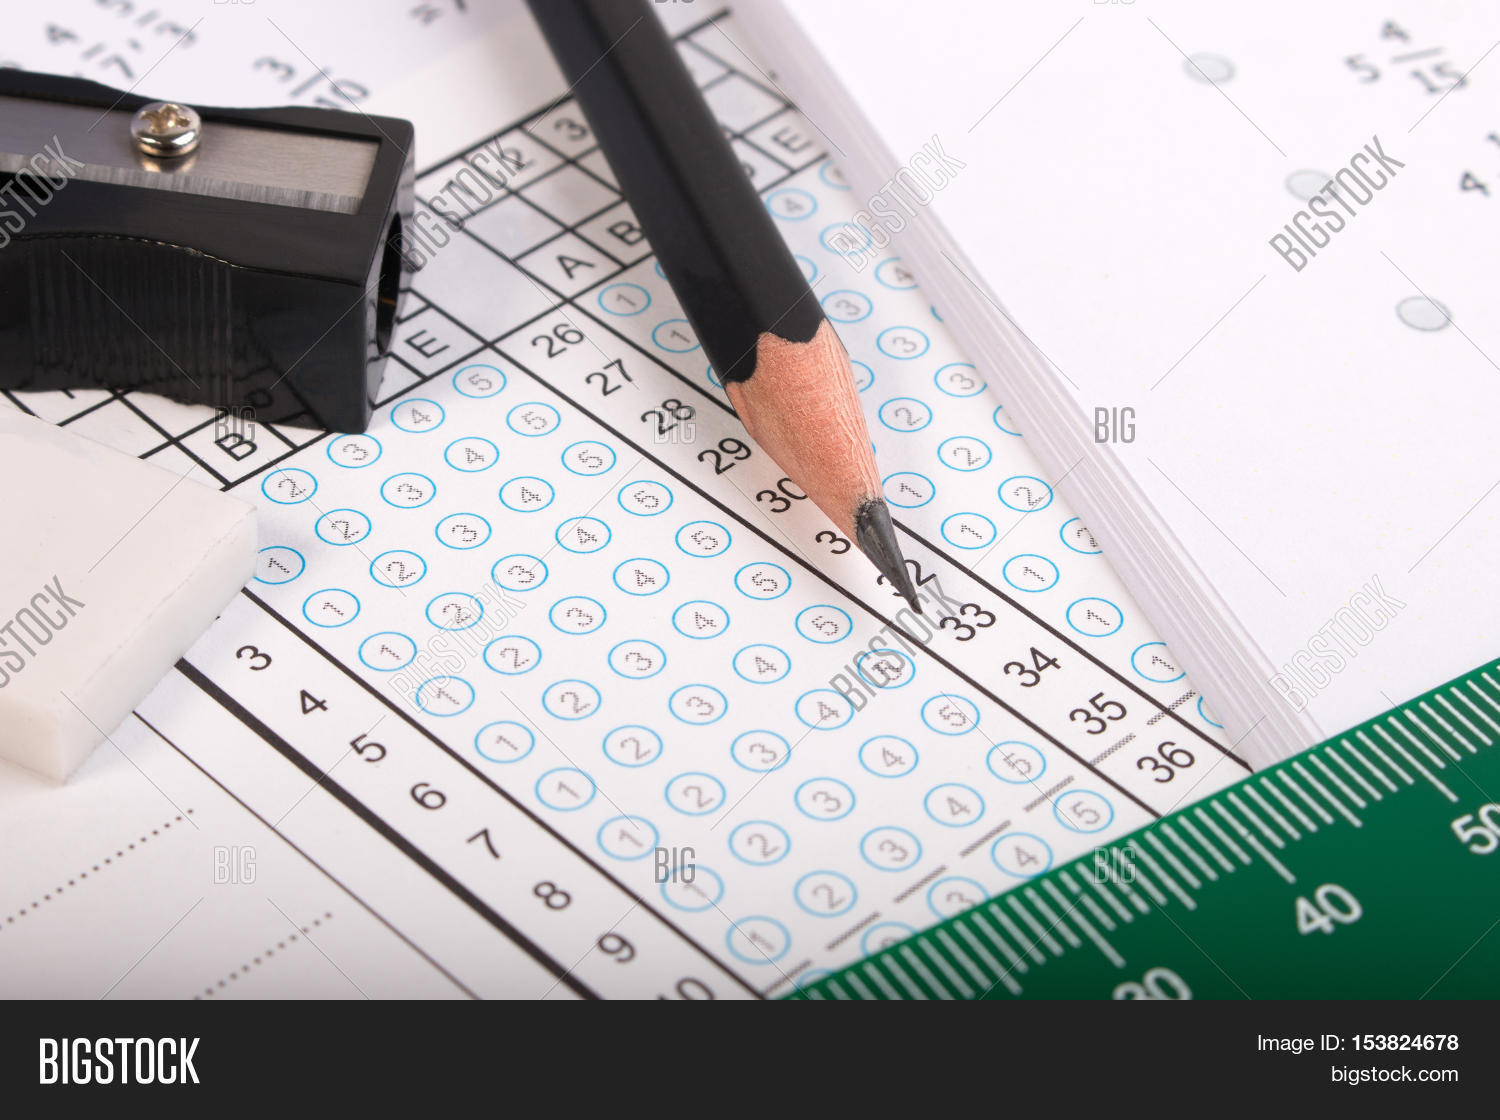 Blank Answer Sheet With 2B Pencil For Testing Standard School Exam